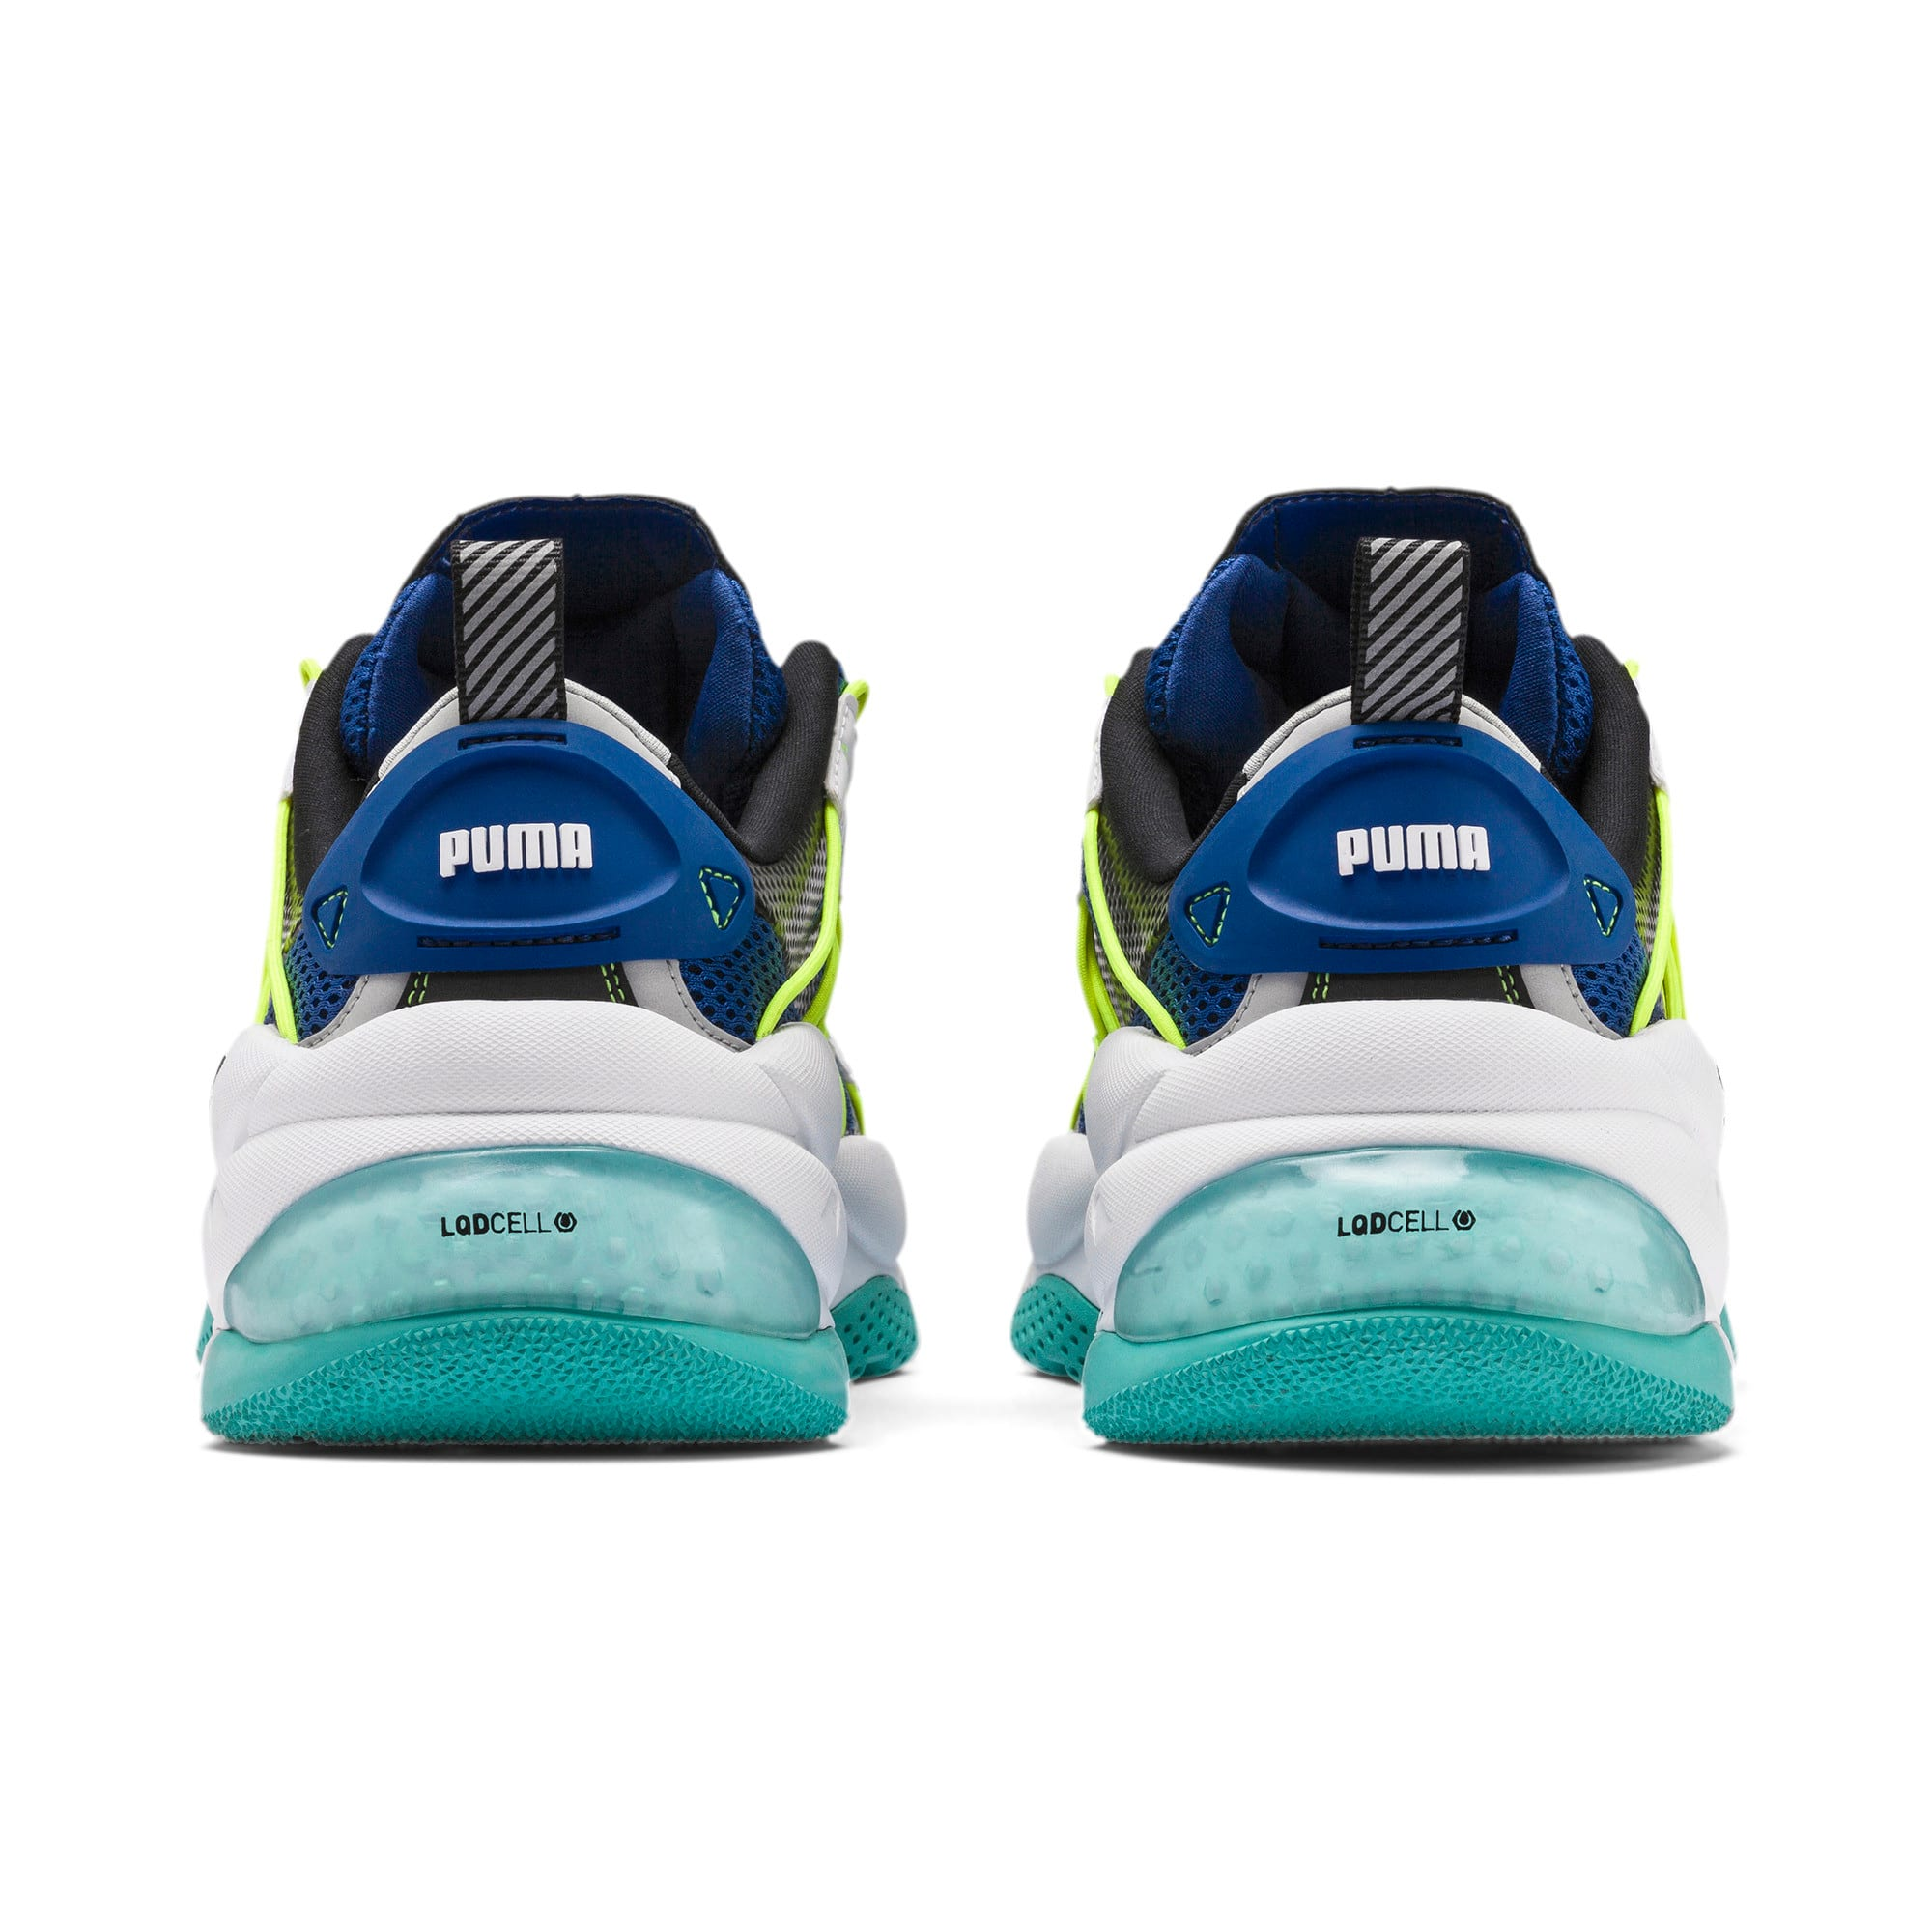 Imagen en miniatura 3 de Zapatillas Evolution LQDCELL Omega, Puma Black-Galaxy Blue, mediana